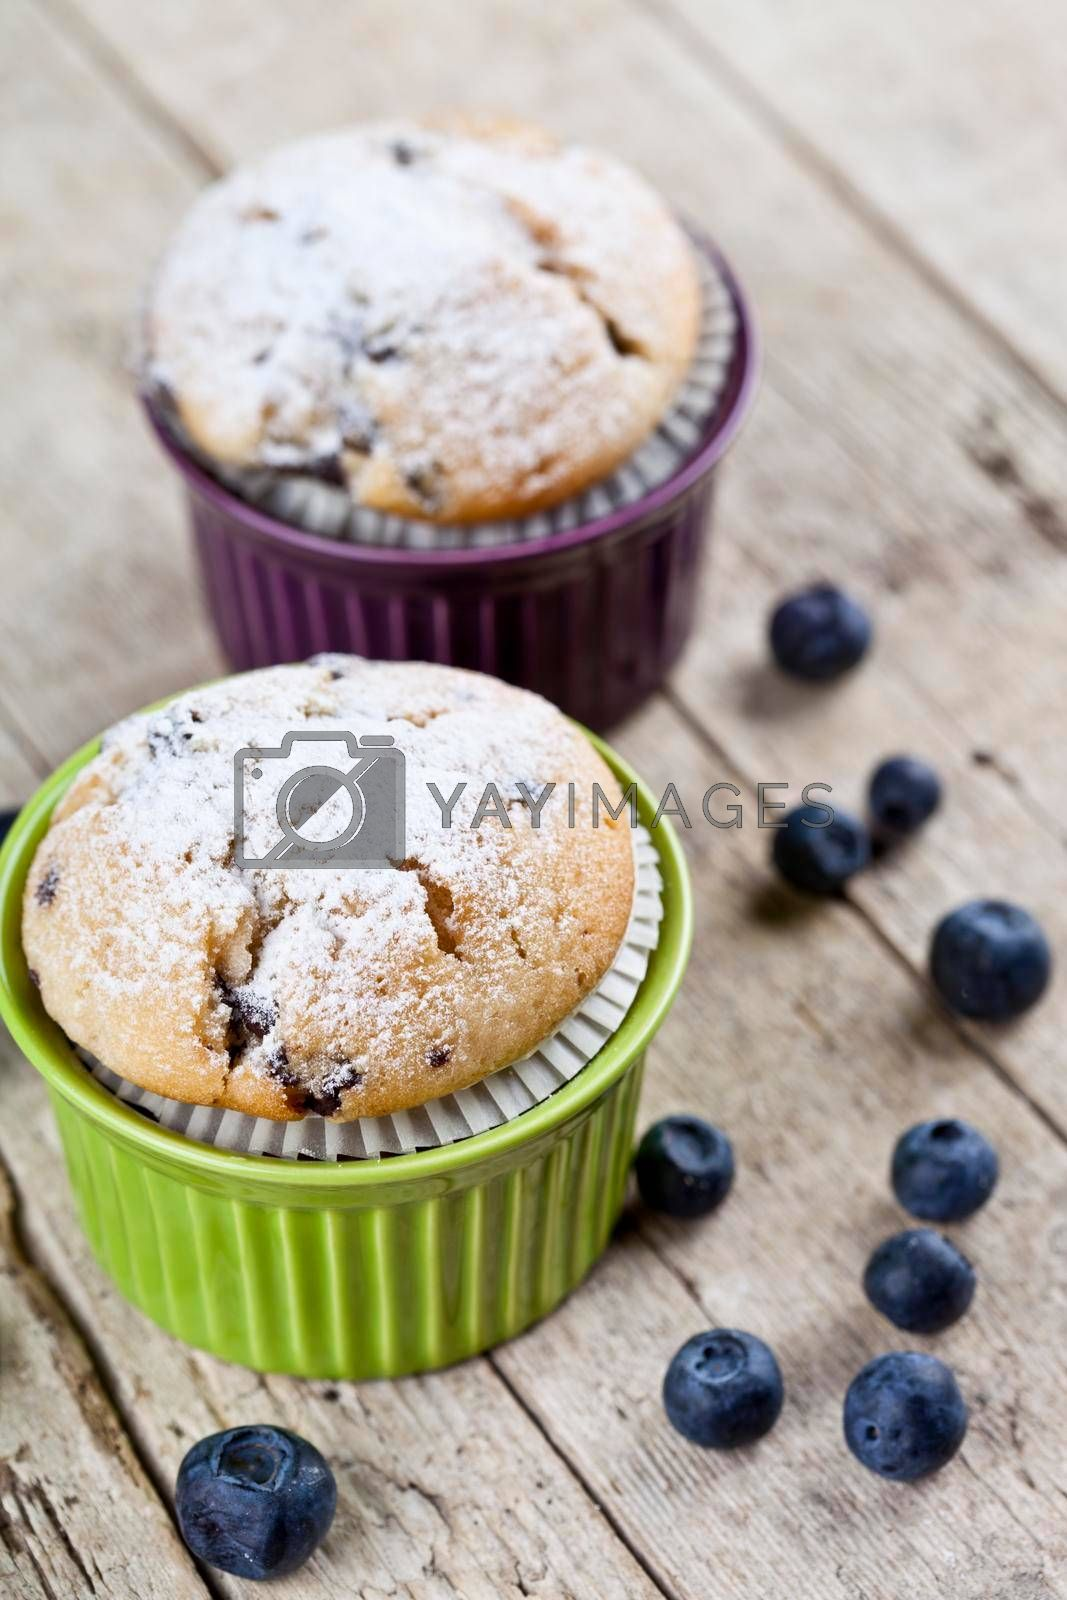 Two homemade fresh muffins on ceramic green and purple bowls with blueberries on rustic wooden table background.